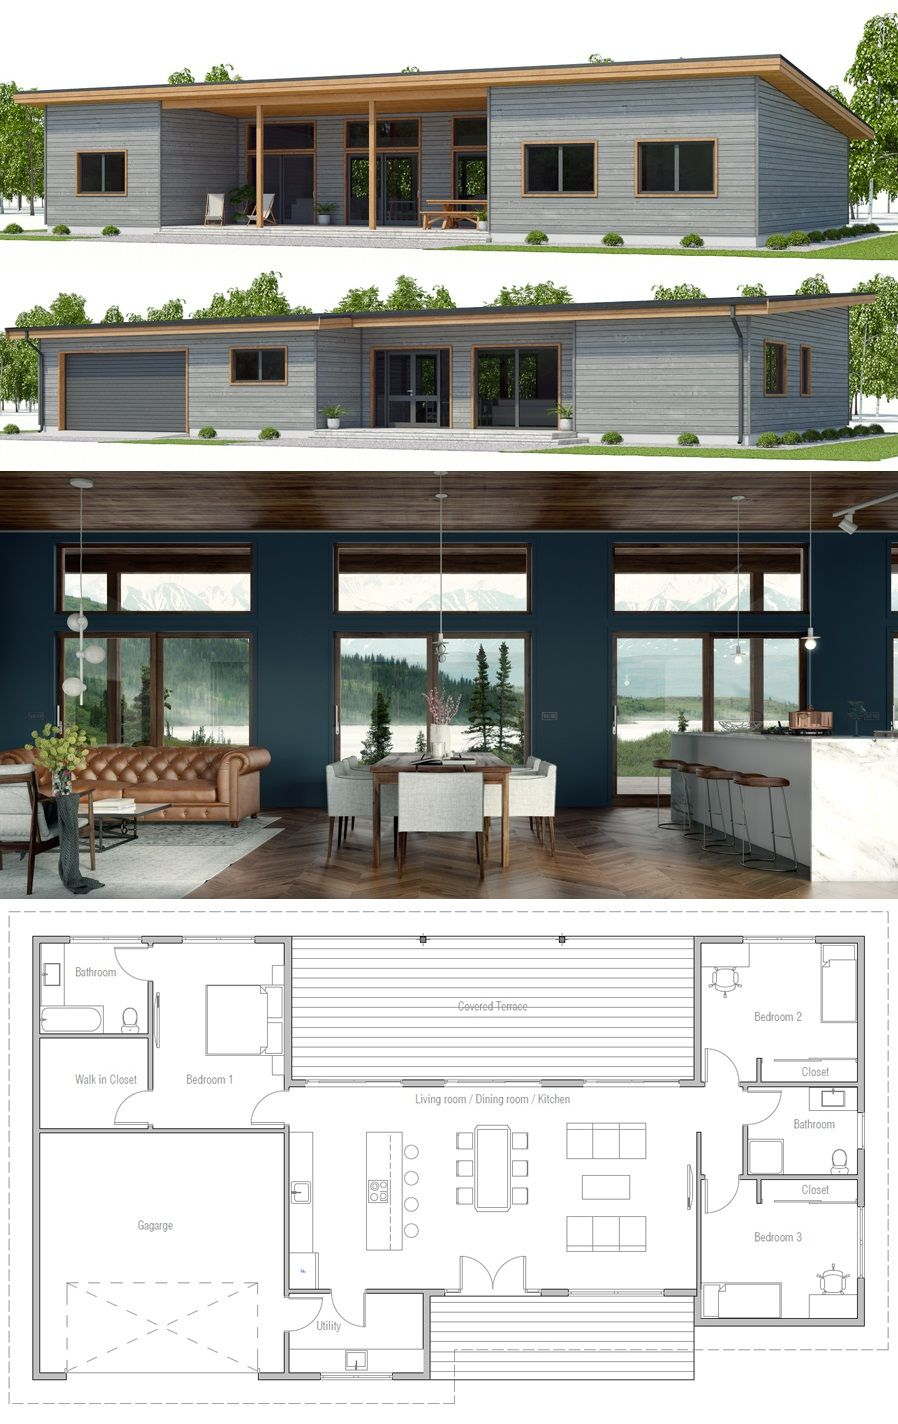 Flachdachbungalow Modern shipping container home plan container house plan container floor